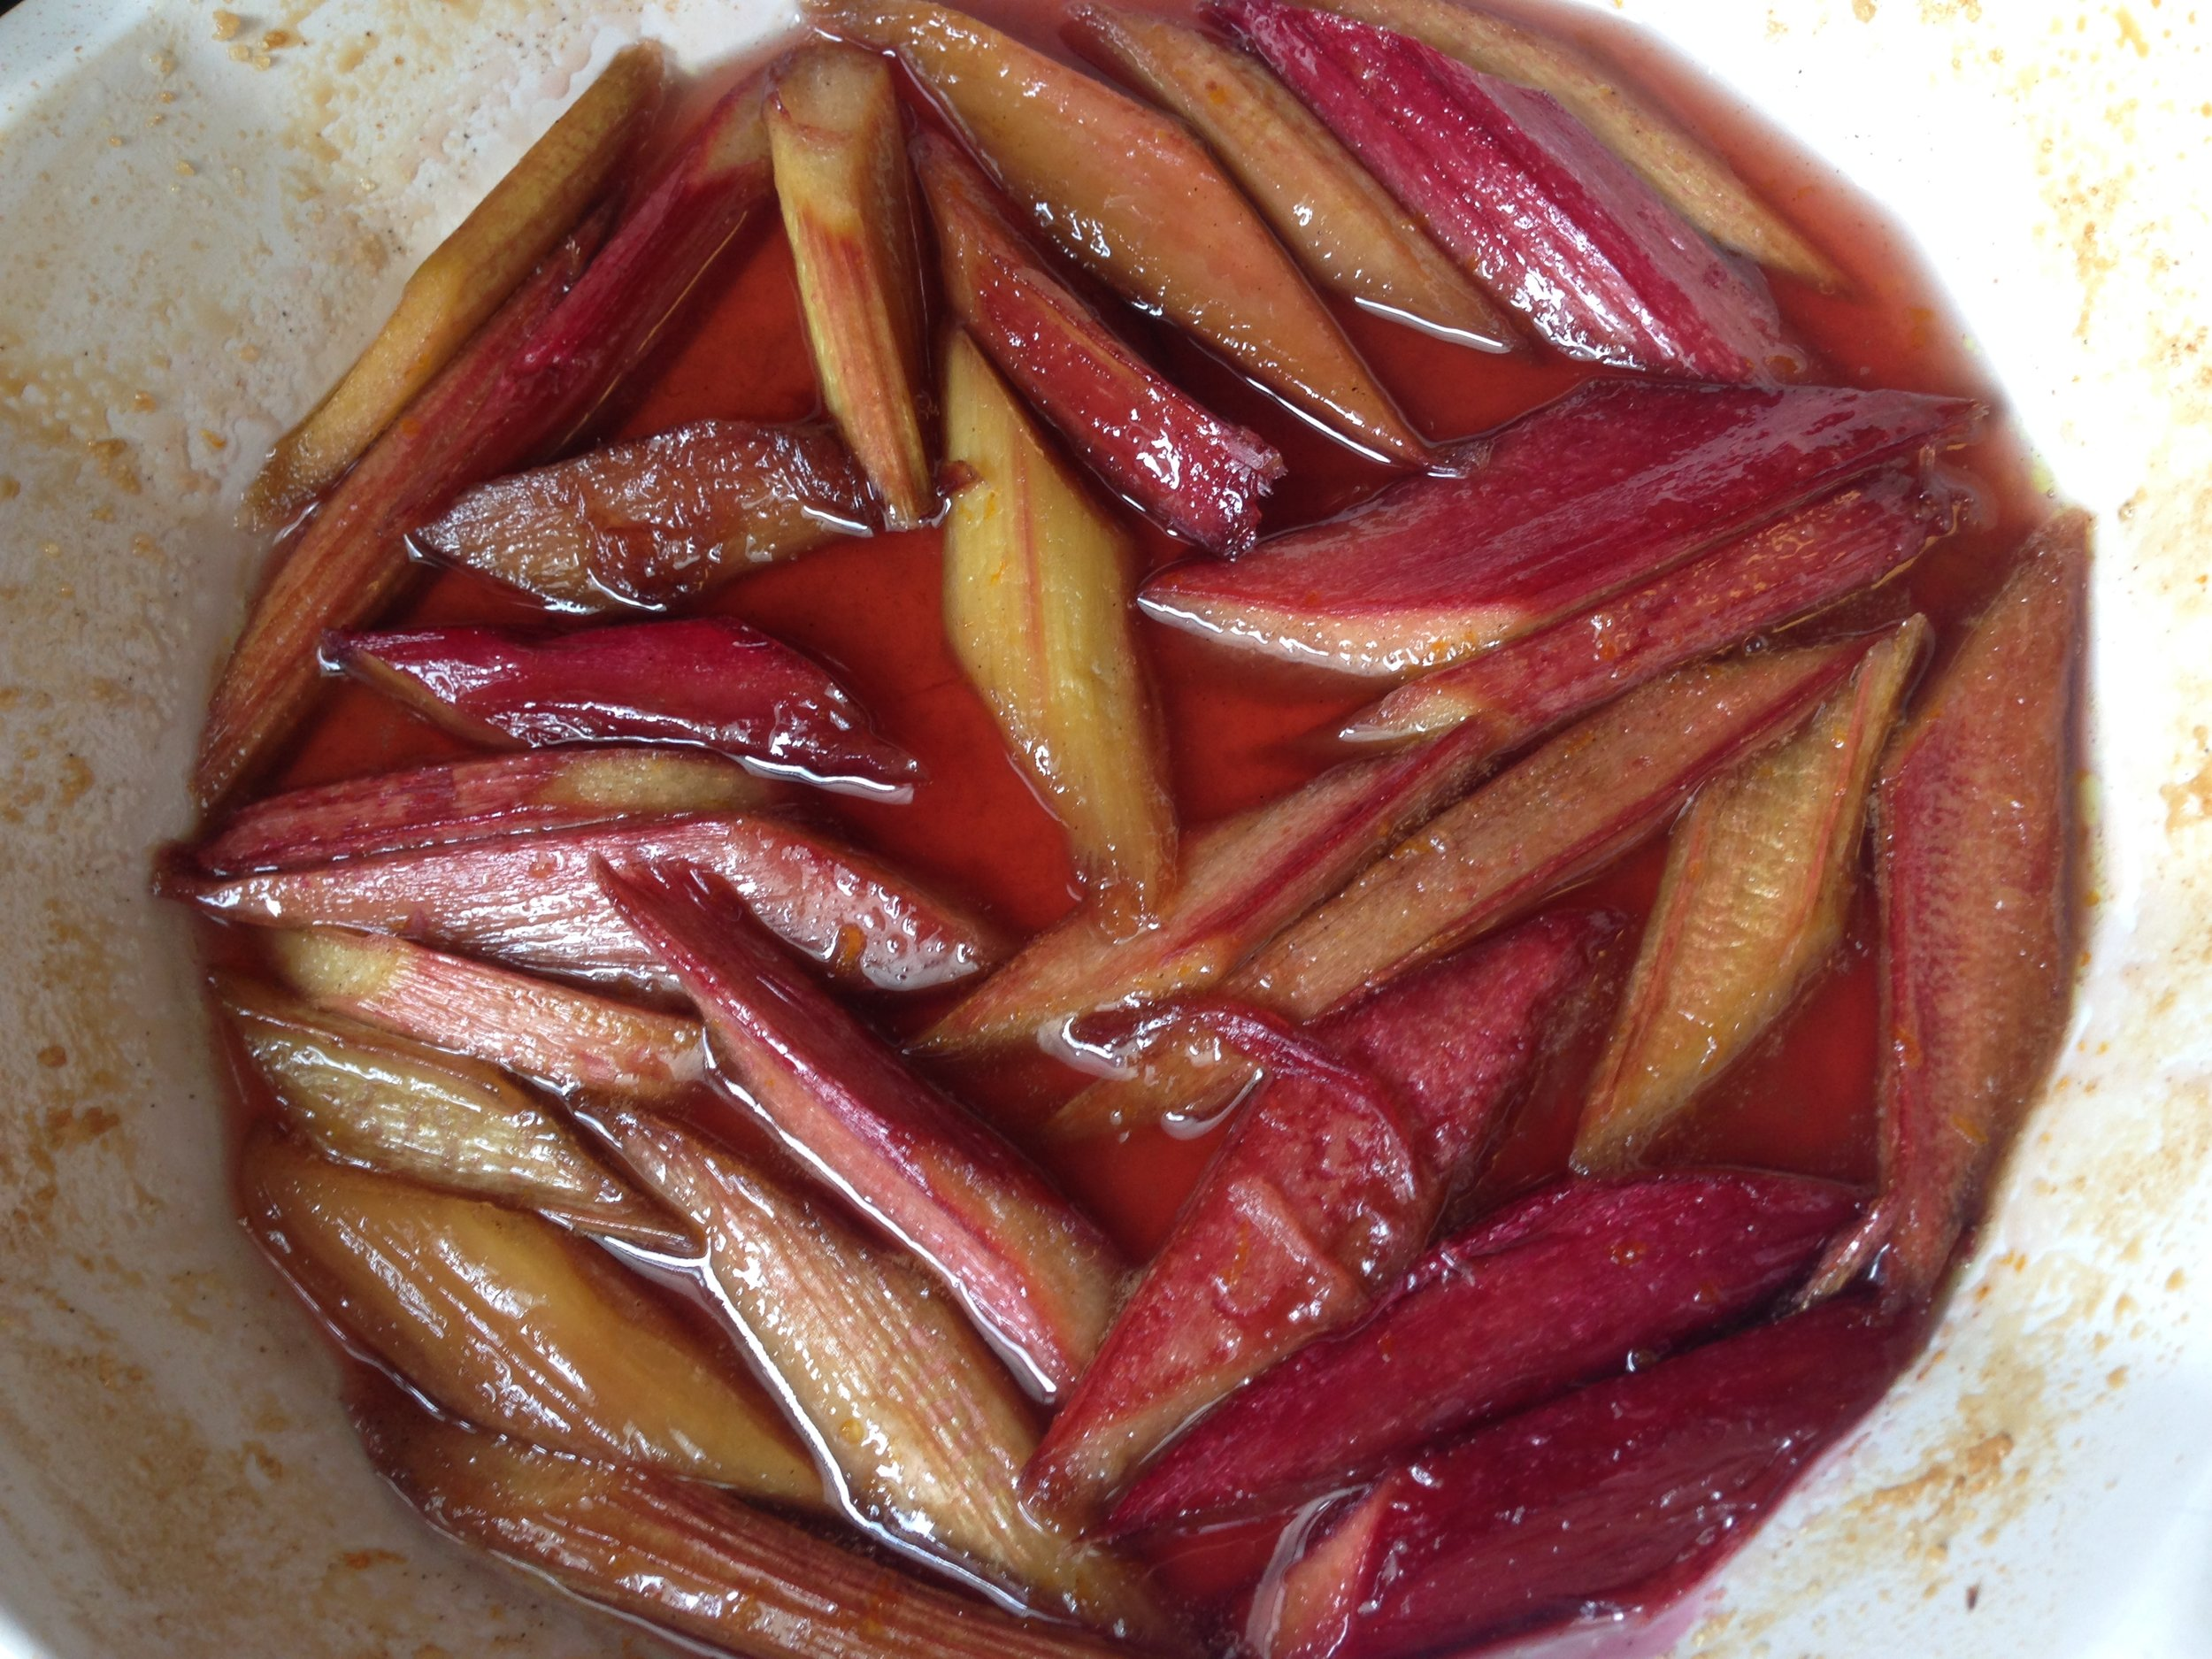 Rhubarb - roasted and cooling fresh out of the oven.